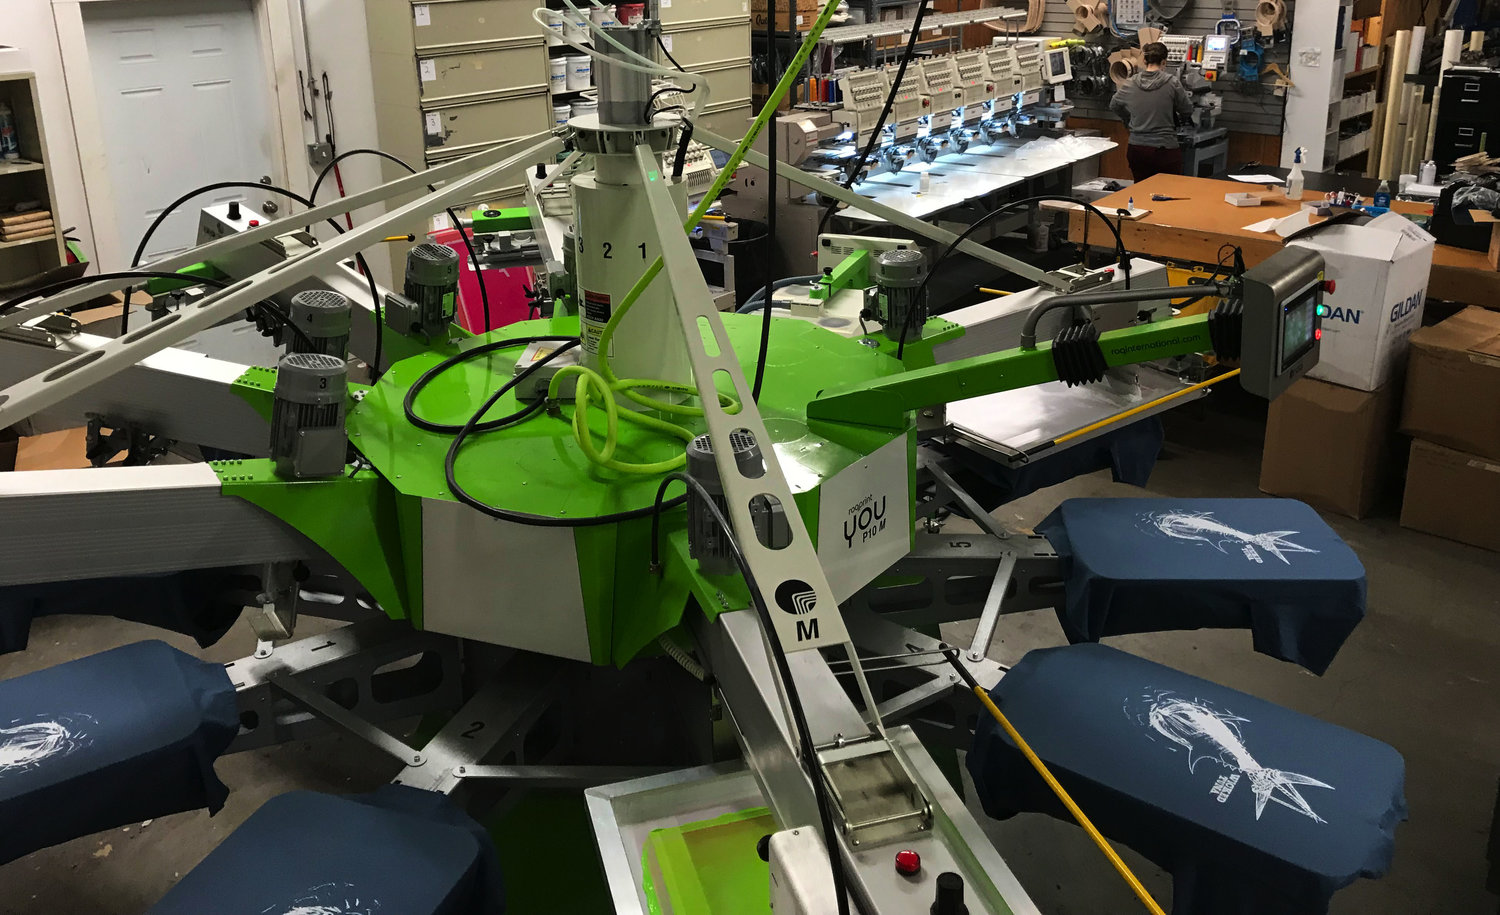 39e801b01 SERVICES; Graphic and Logo Design · Screen Printing - Embroidery - Direct  to Garment ...